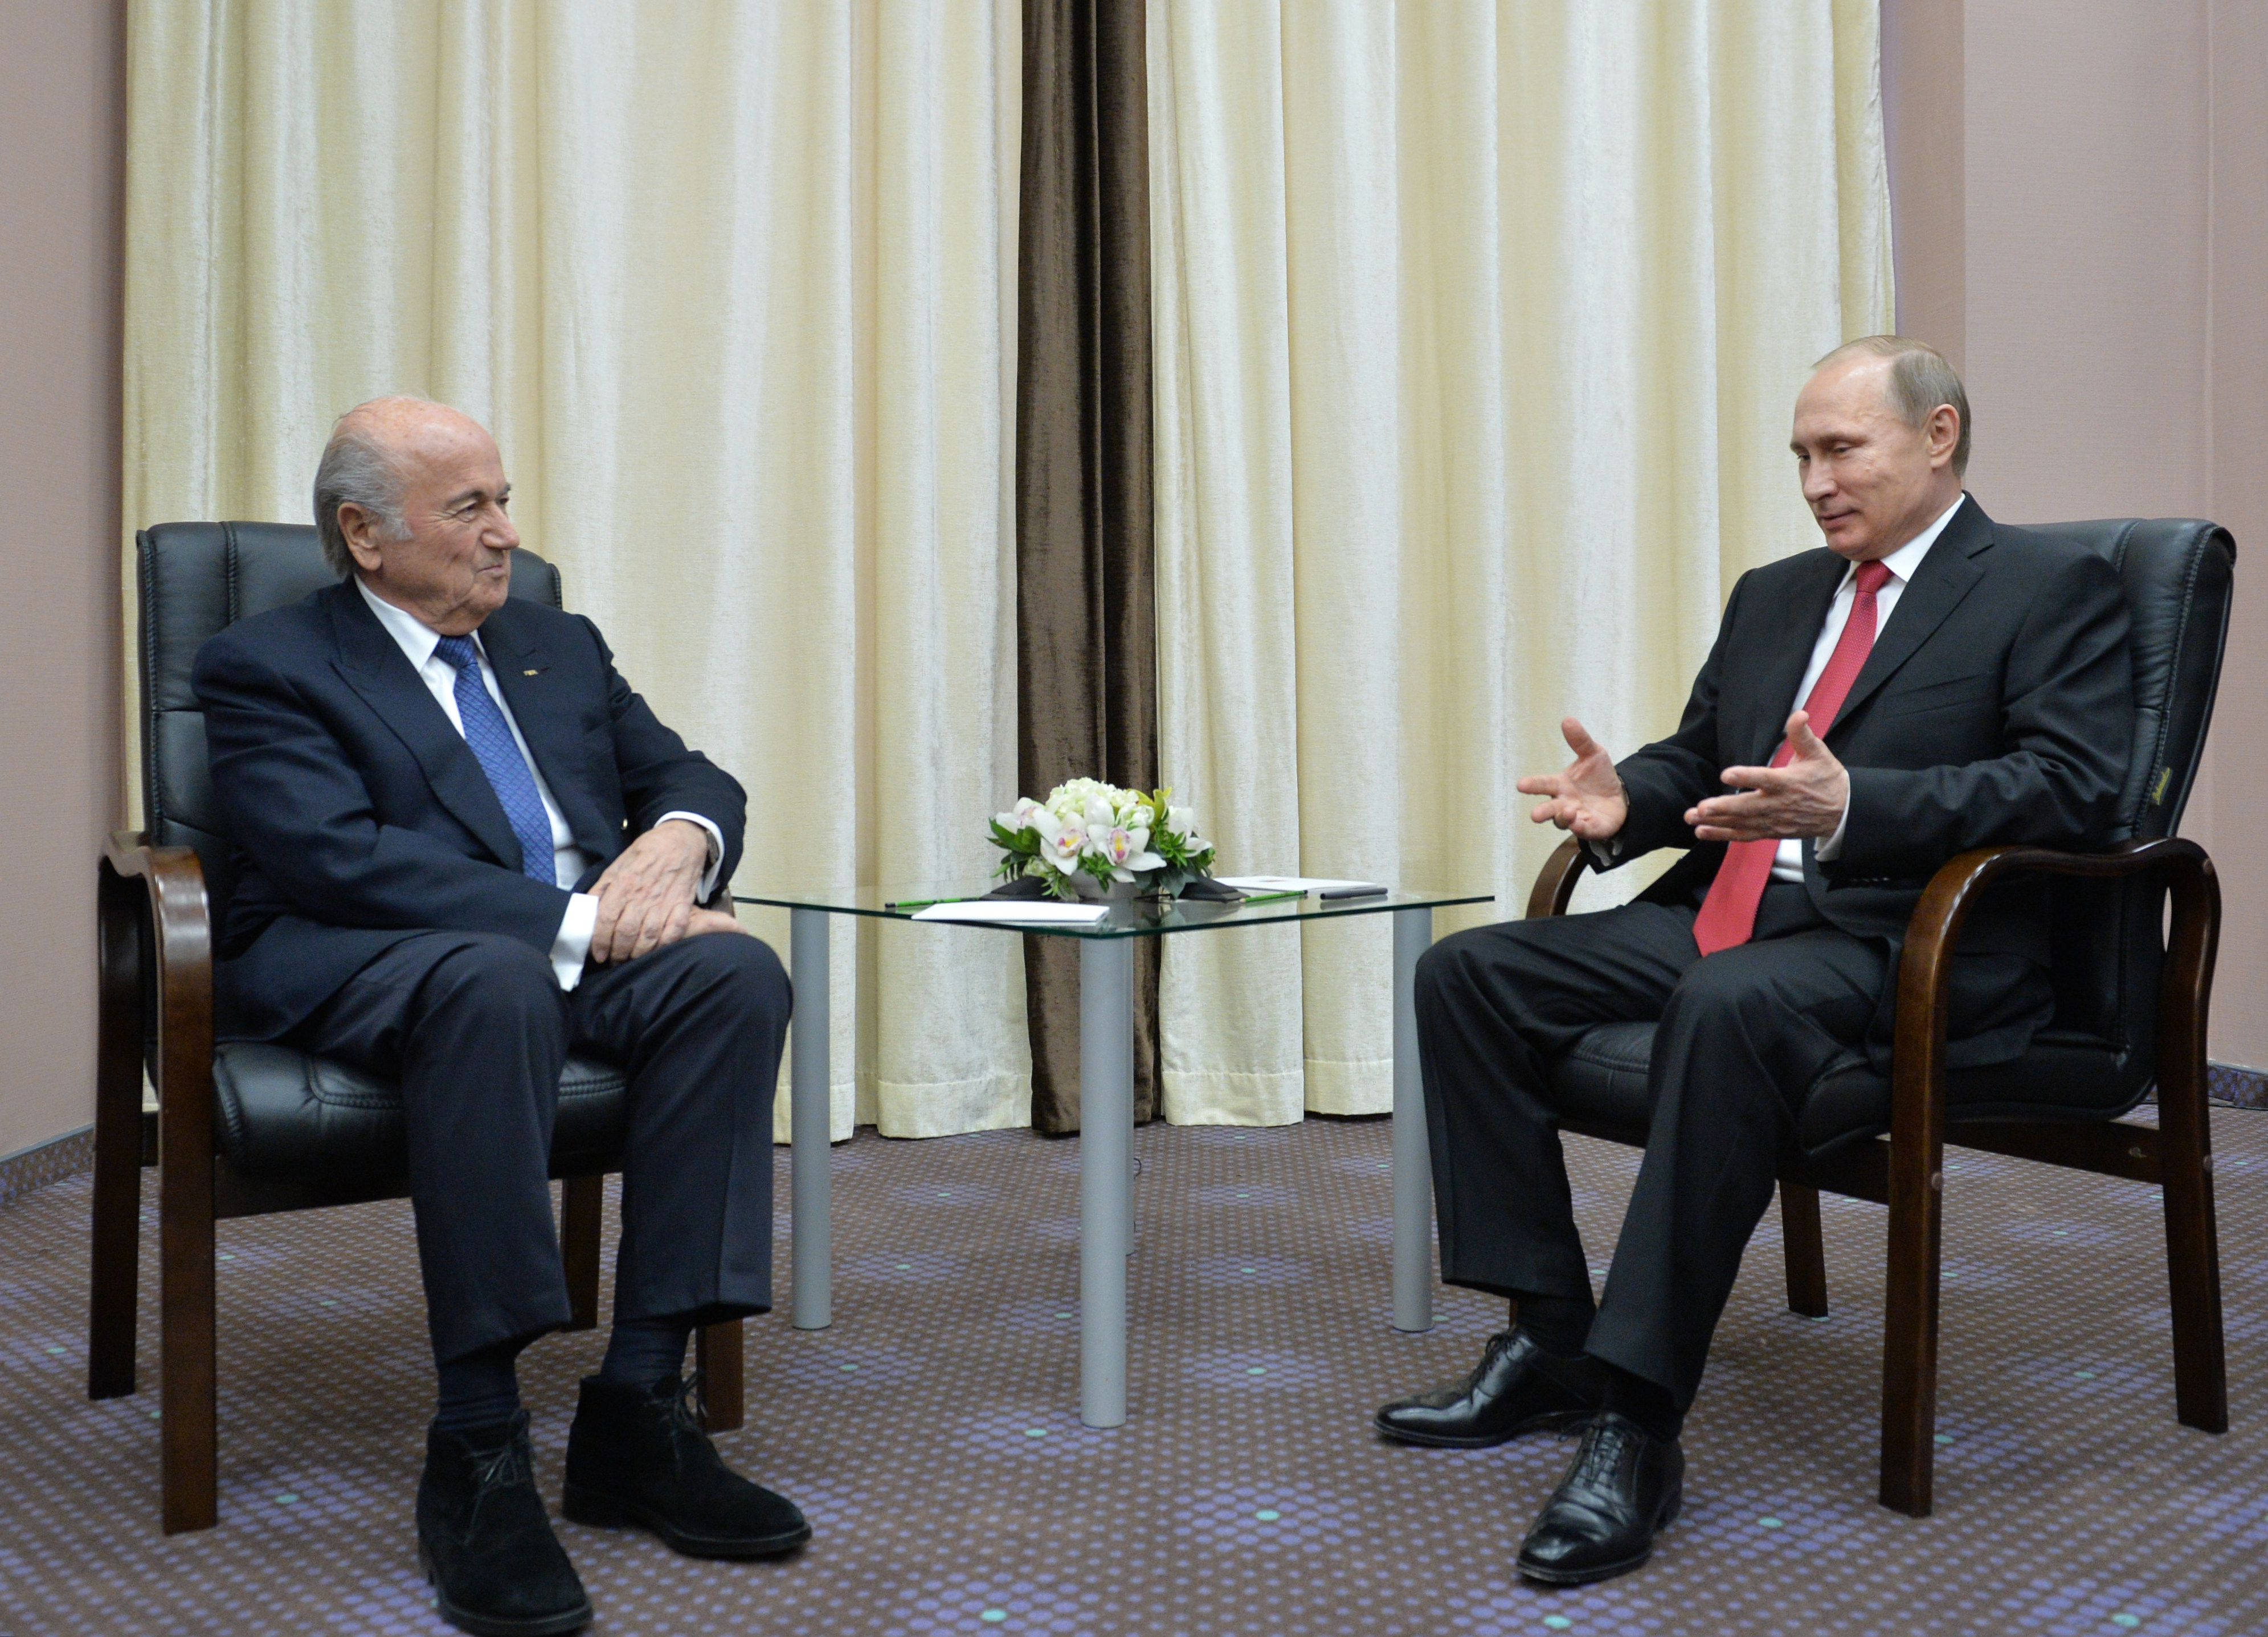 Russian President Vladimir Putin, right, meets with FIFA President Sepp Blatter in the Russian Black Sea resort of Sochi, Russia, Monday, April 20, 2015. (Alexei Druzhinin/RIA Novosti, Kremlin Pool Photo via AP)